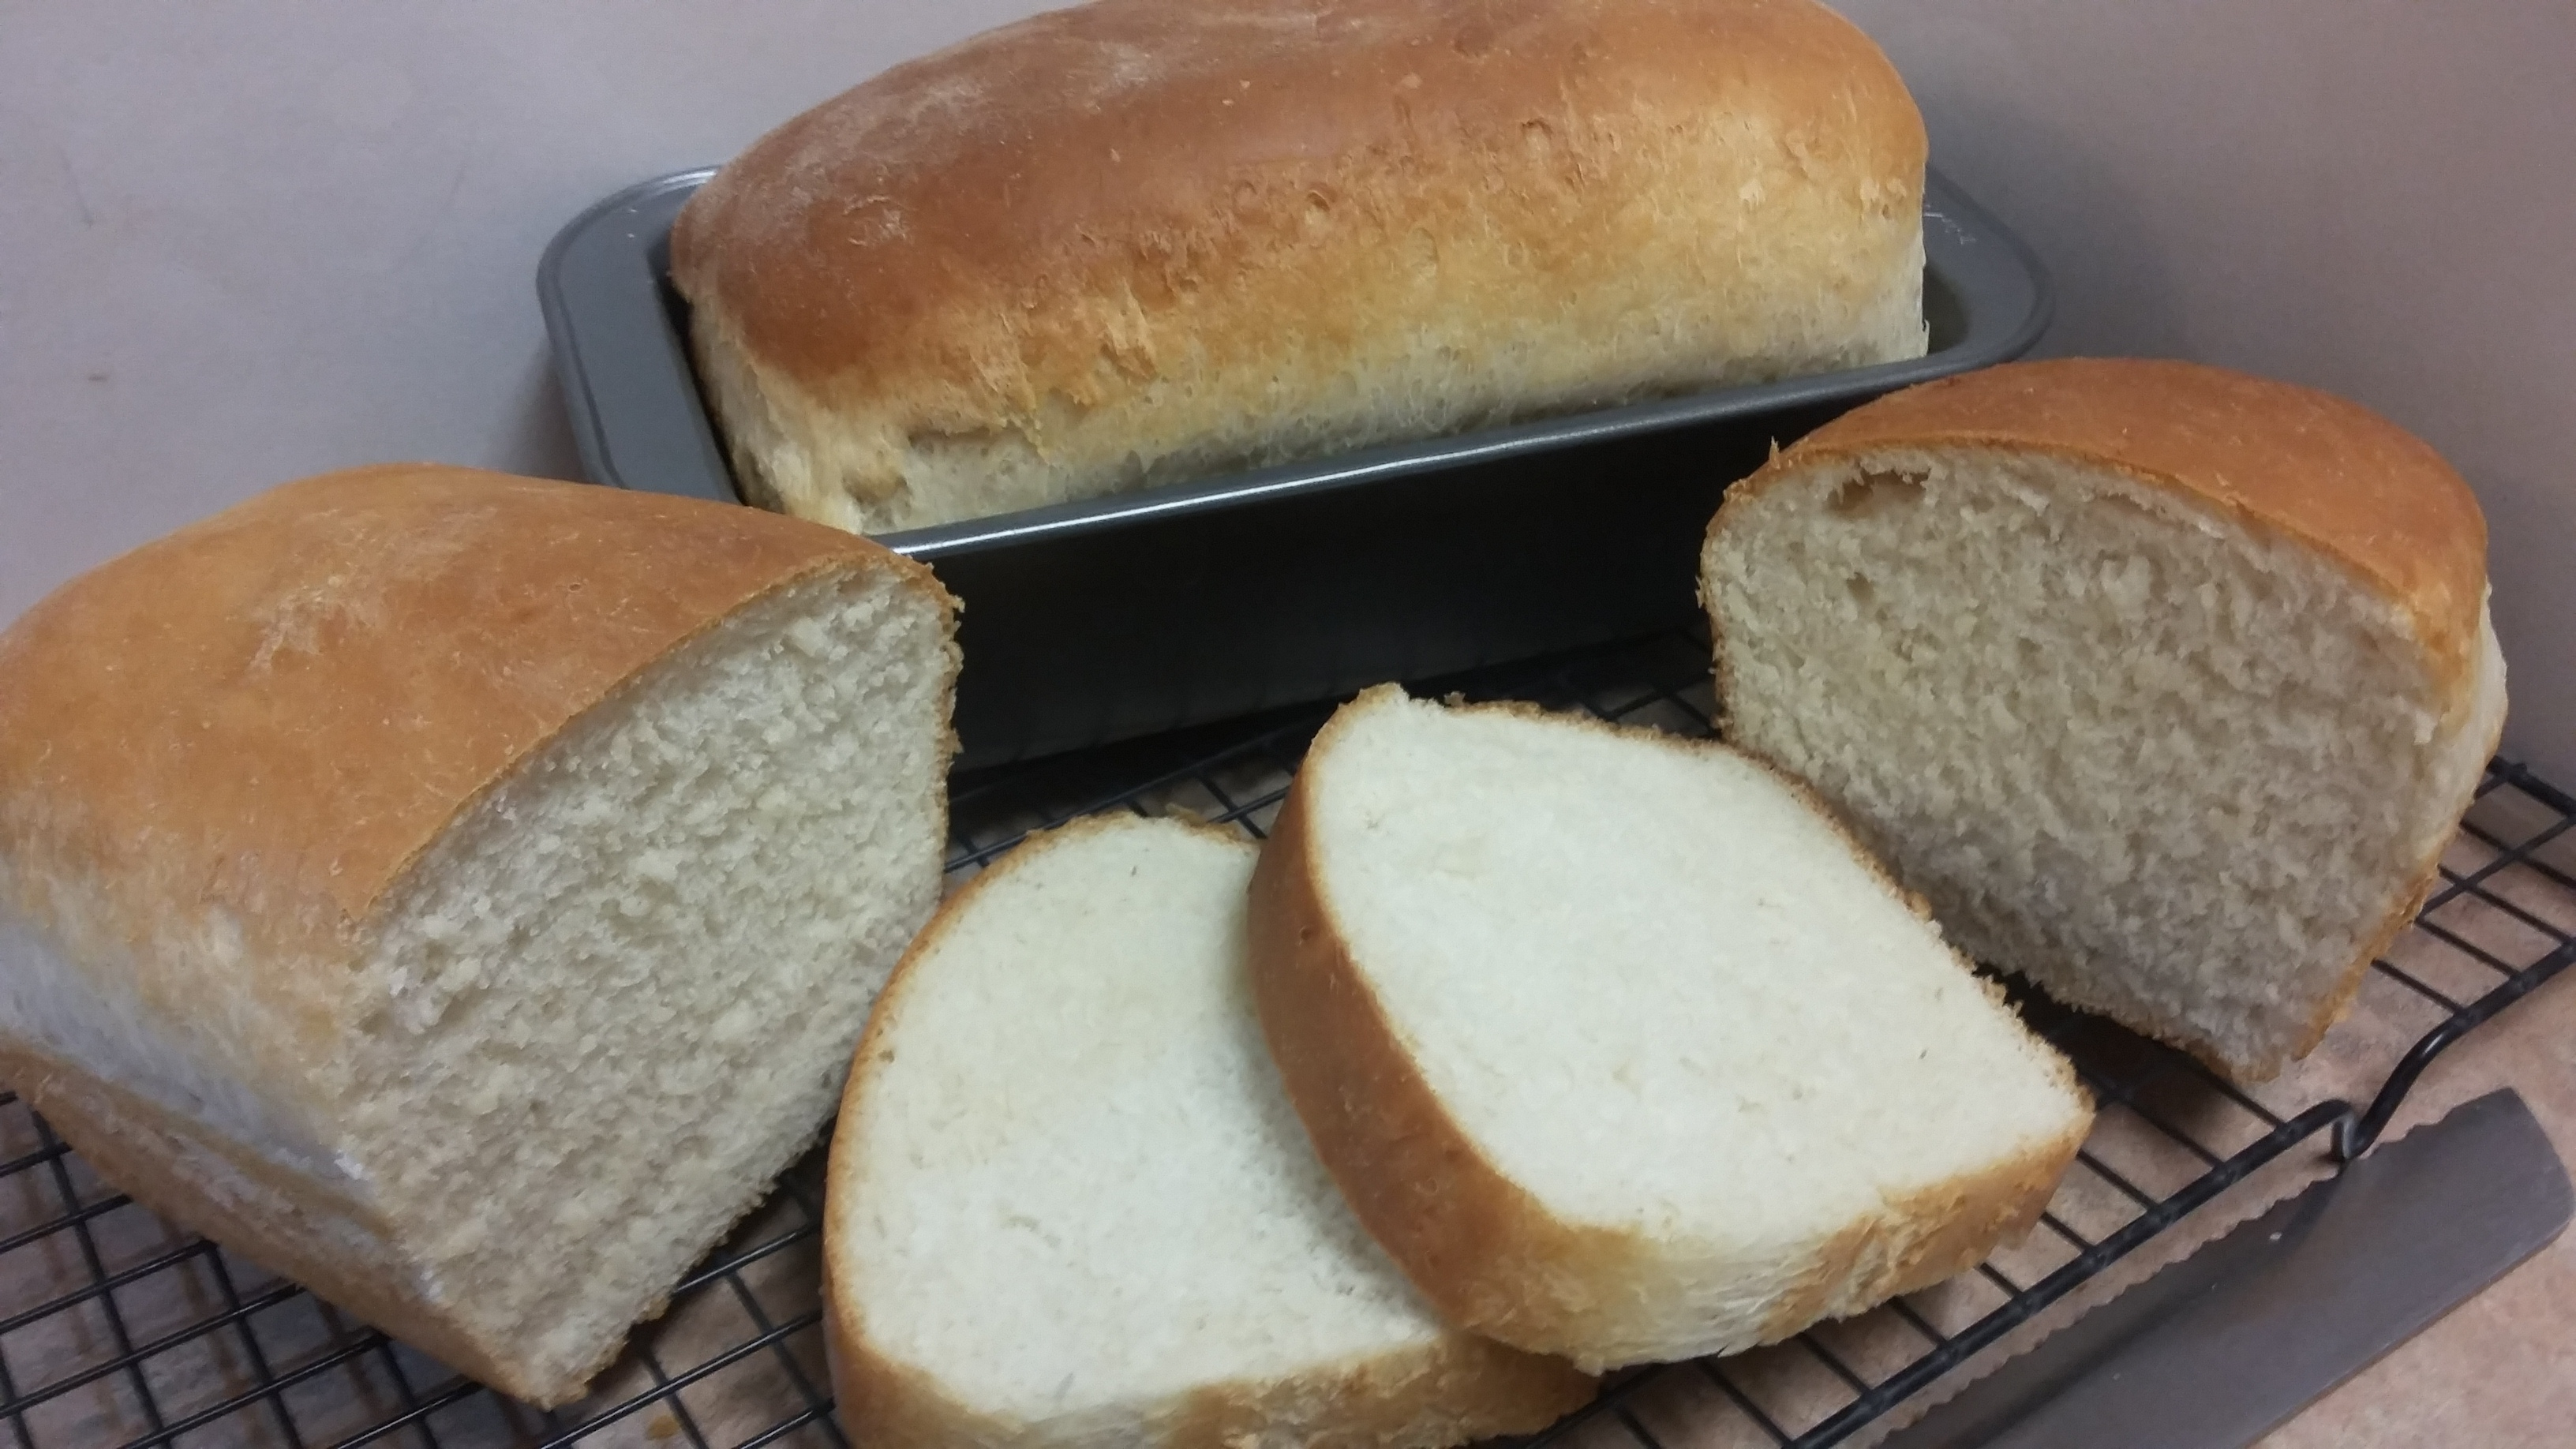 Freshly baked homemade bread, all sliced and ready to be devoured!